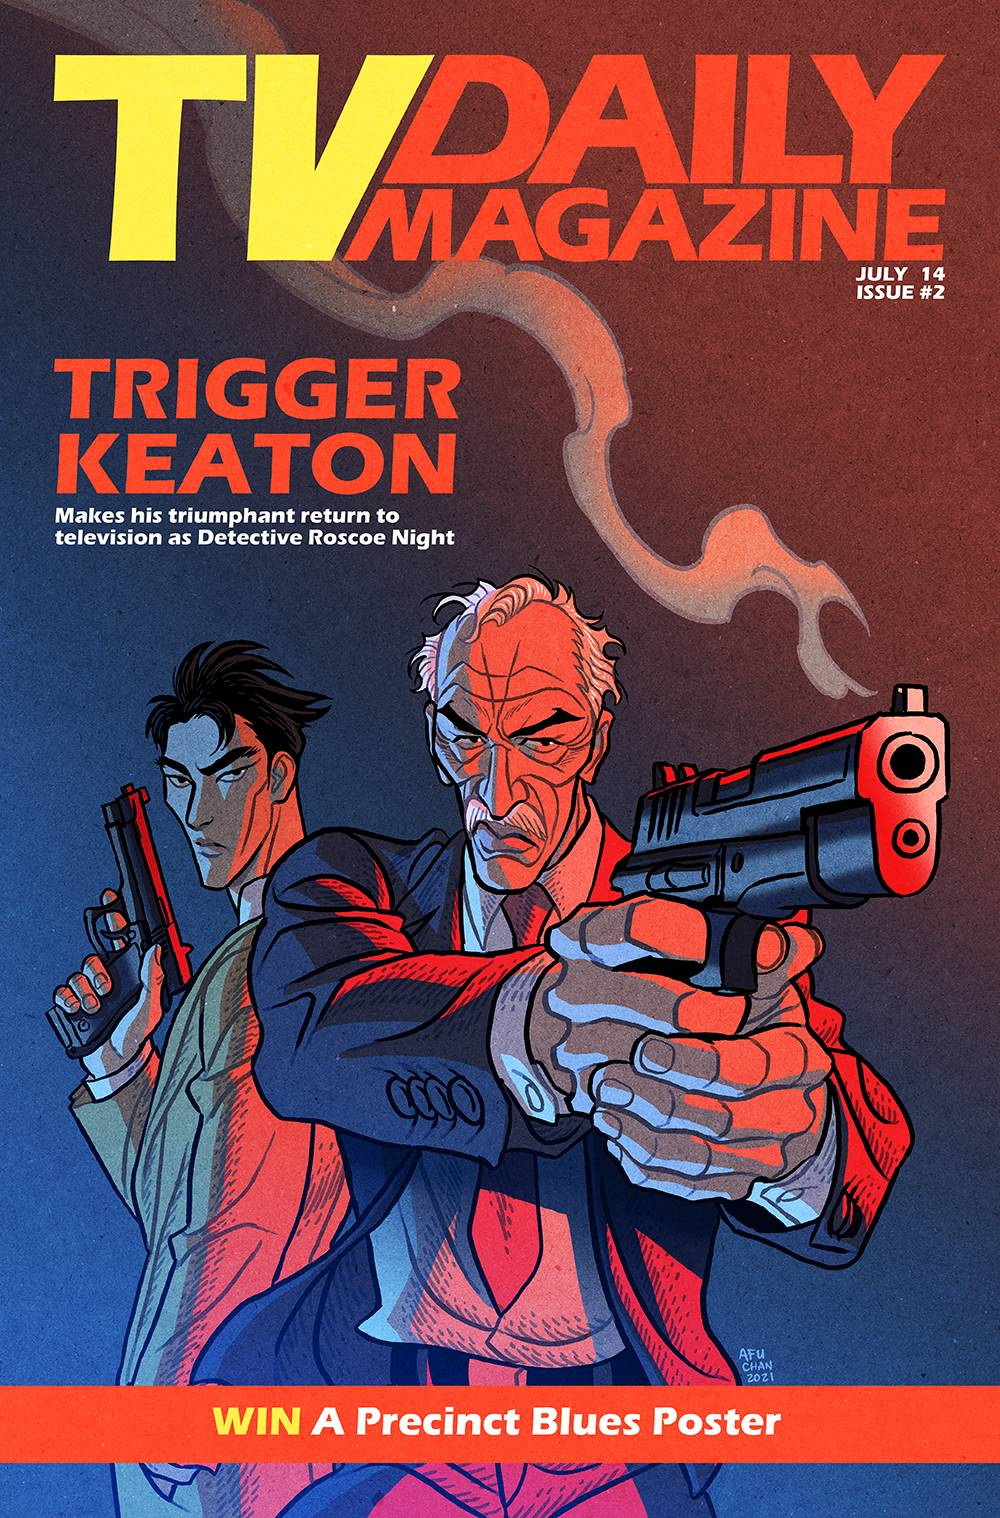 SIX SIDEKICKS OF TRIGGER KEATON #2 CVR B CHAN (MR)